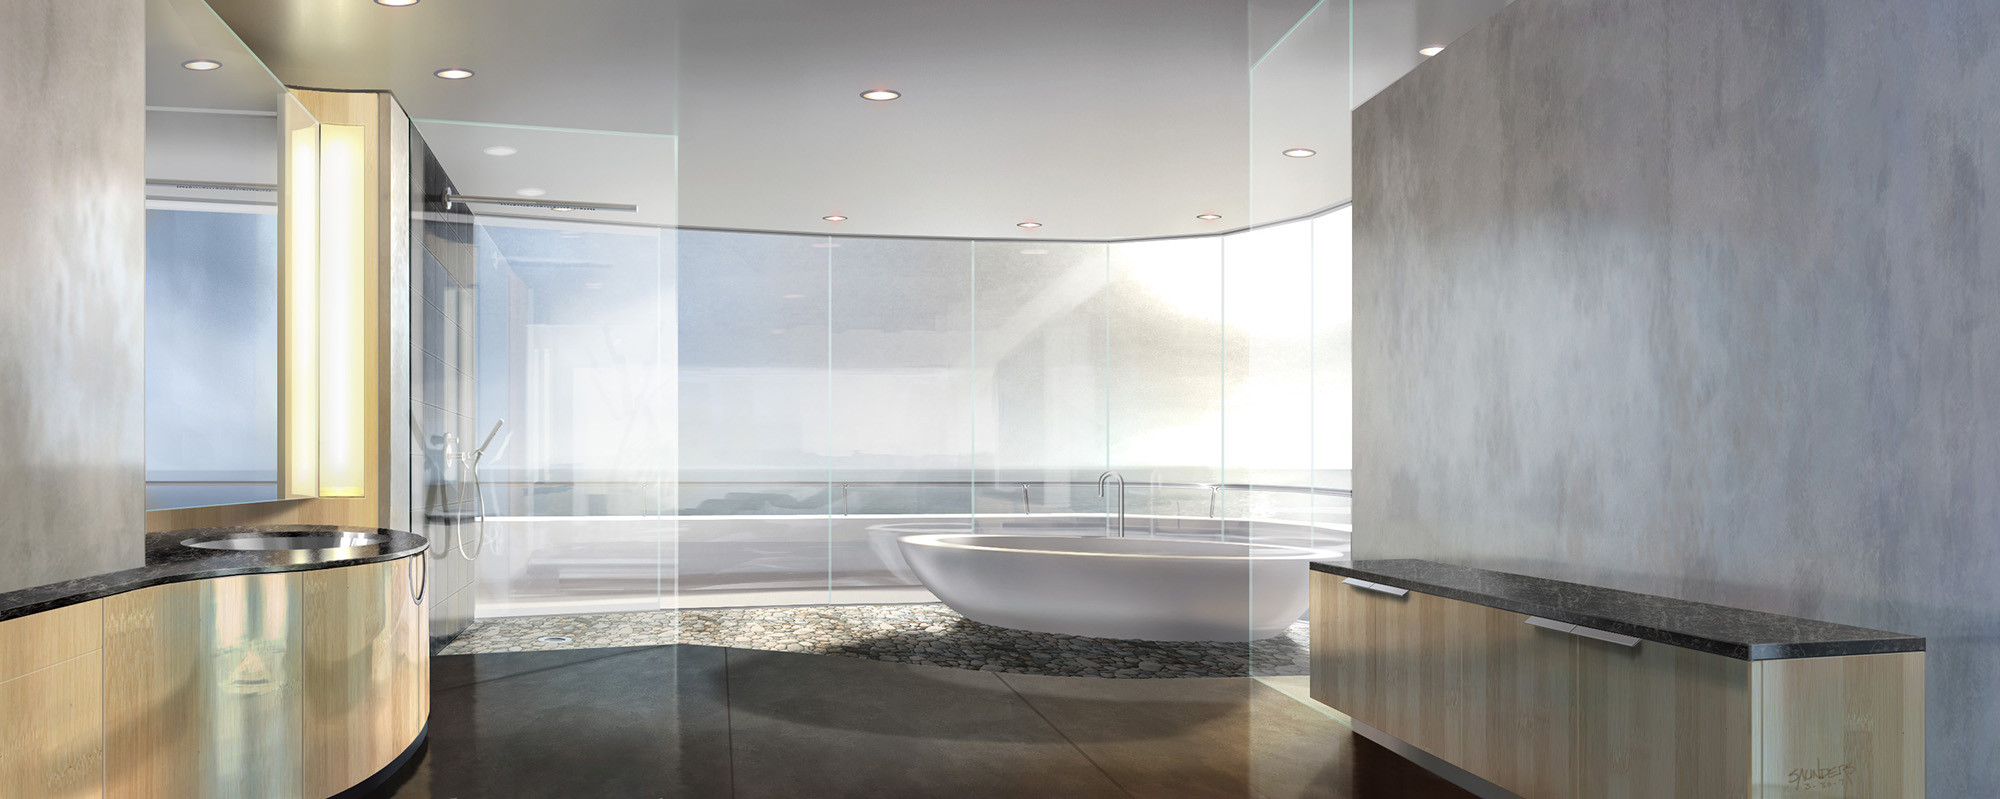 Tony's bathroom, west view. This never made it into the film but was fun to design nevertheless!